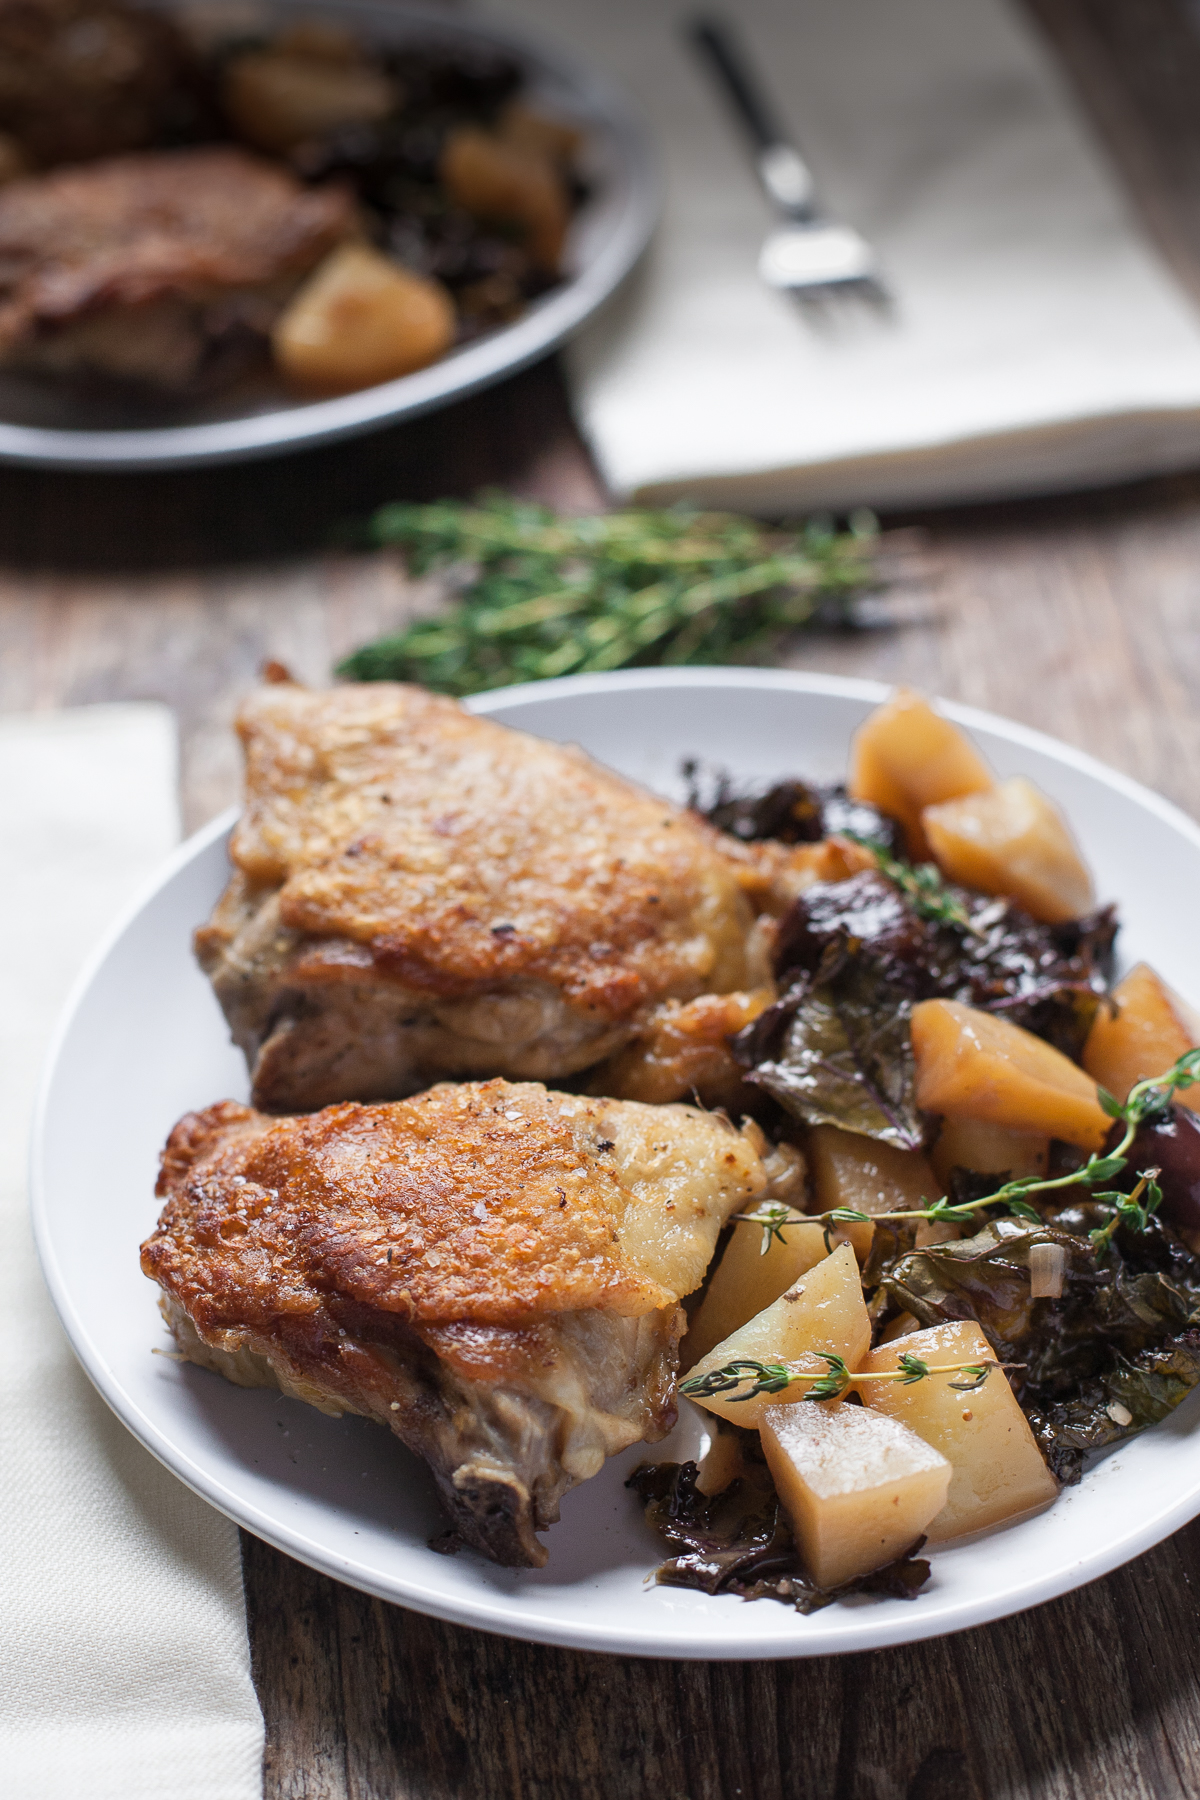 Pan-Roasted Chicken with Figs and Olives from The New Yiddish Kitchen